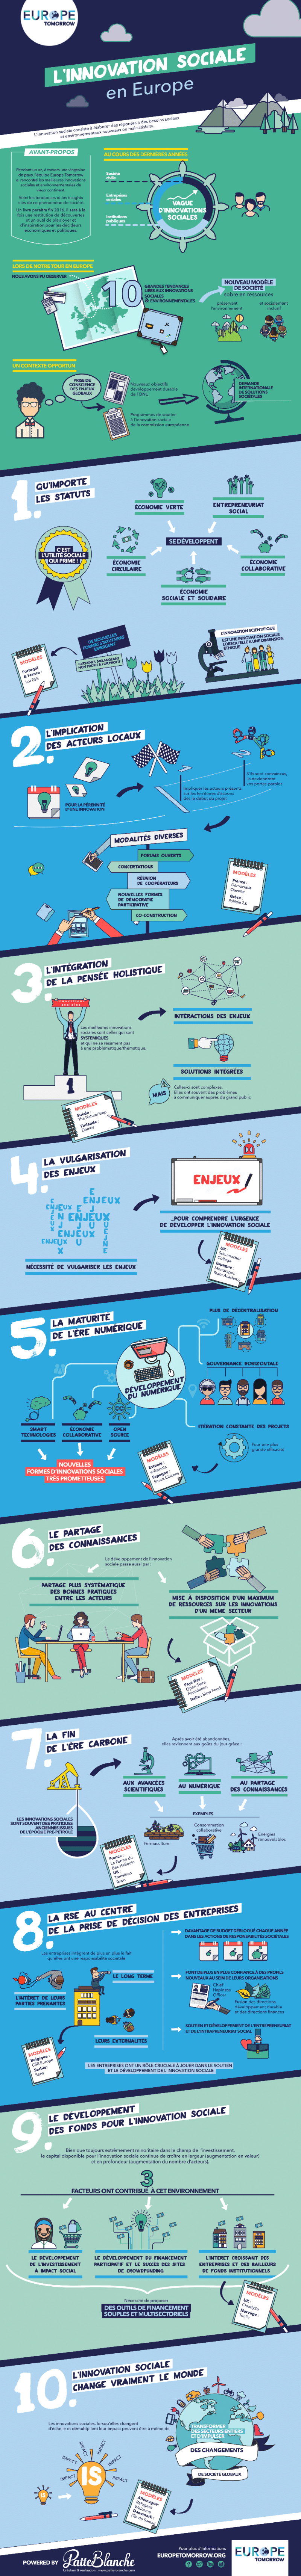 ET_Infographie-IS-VF-WEB-1